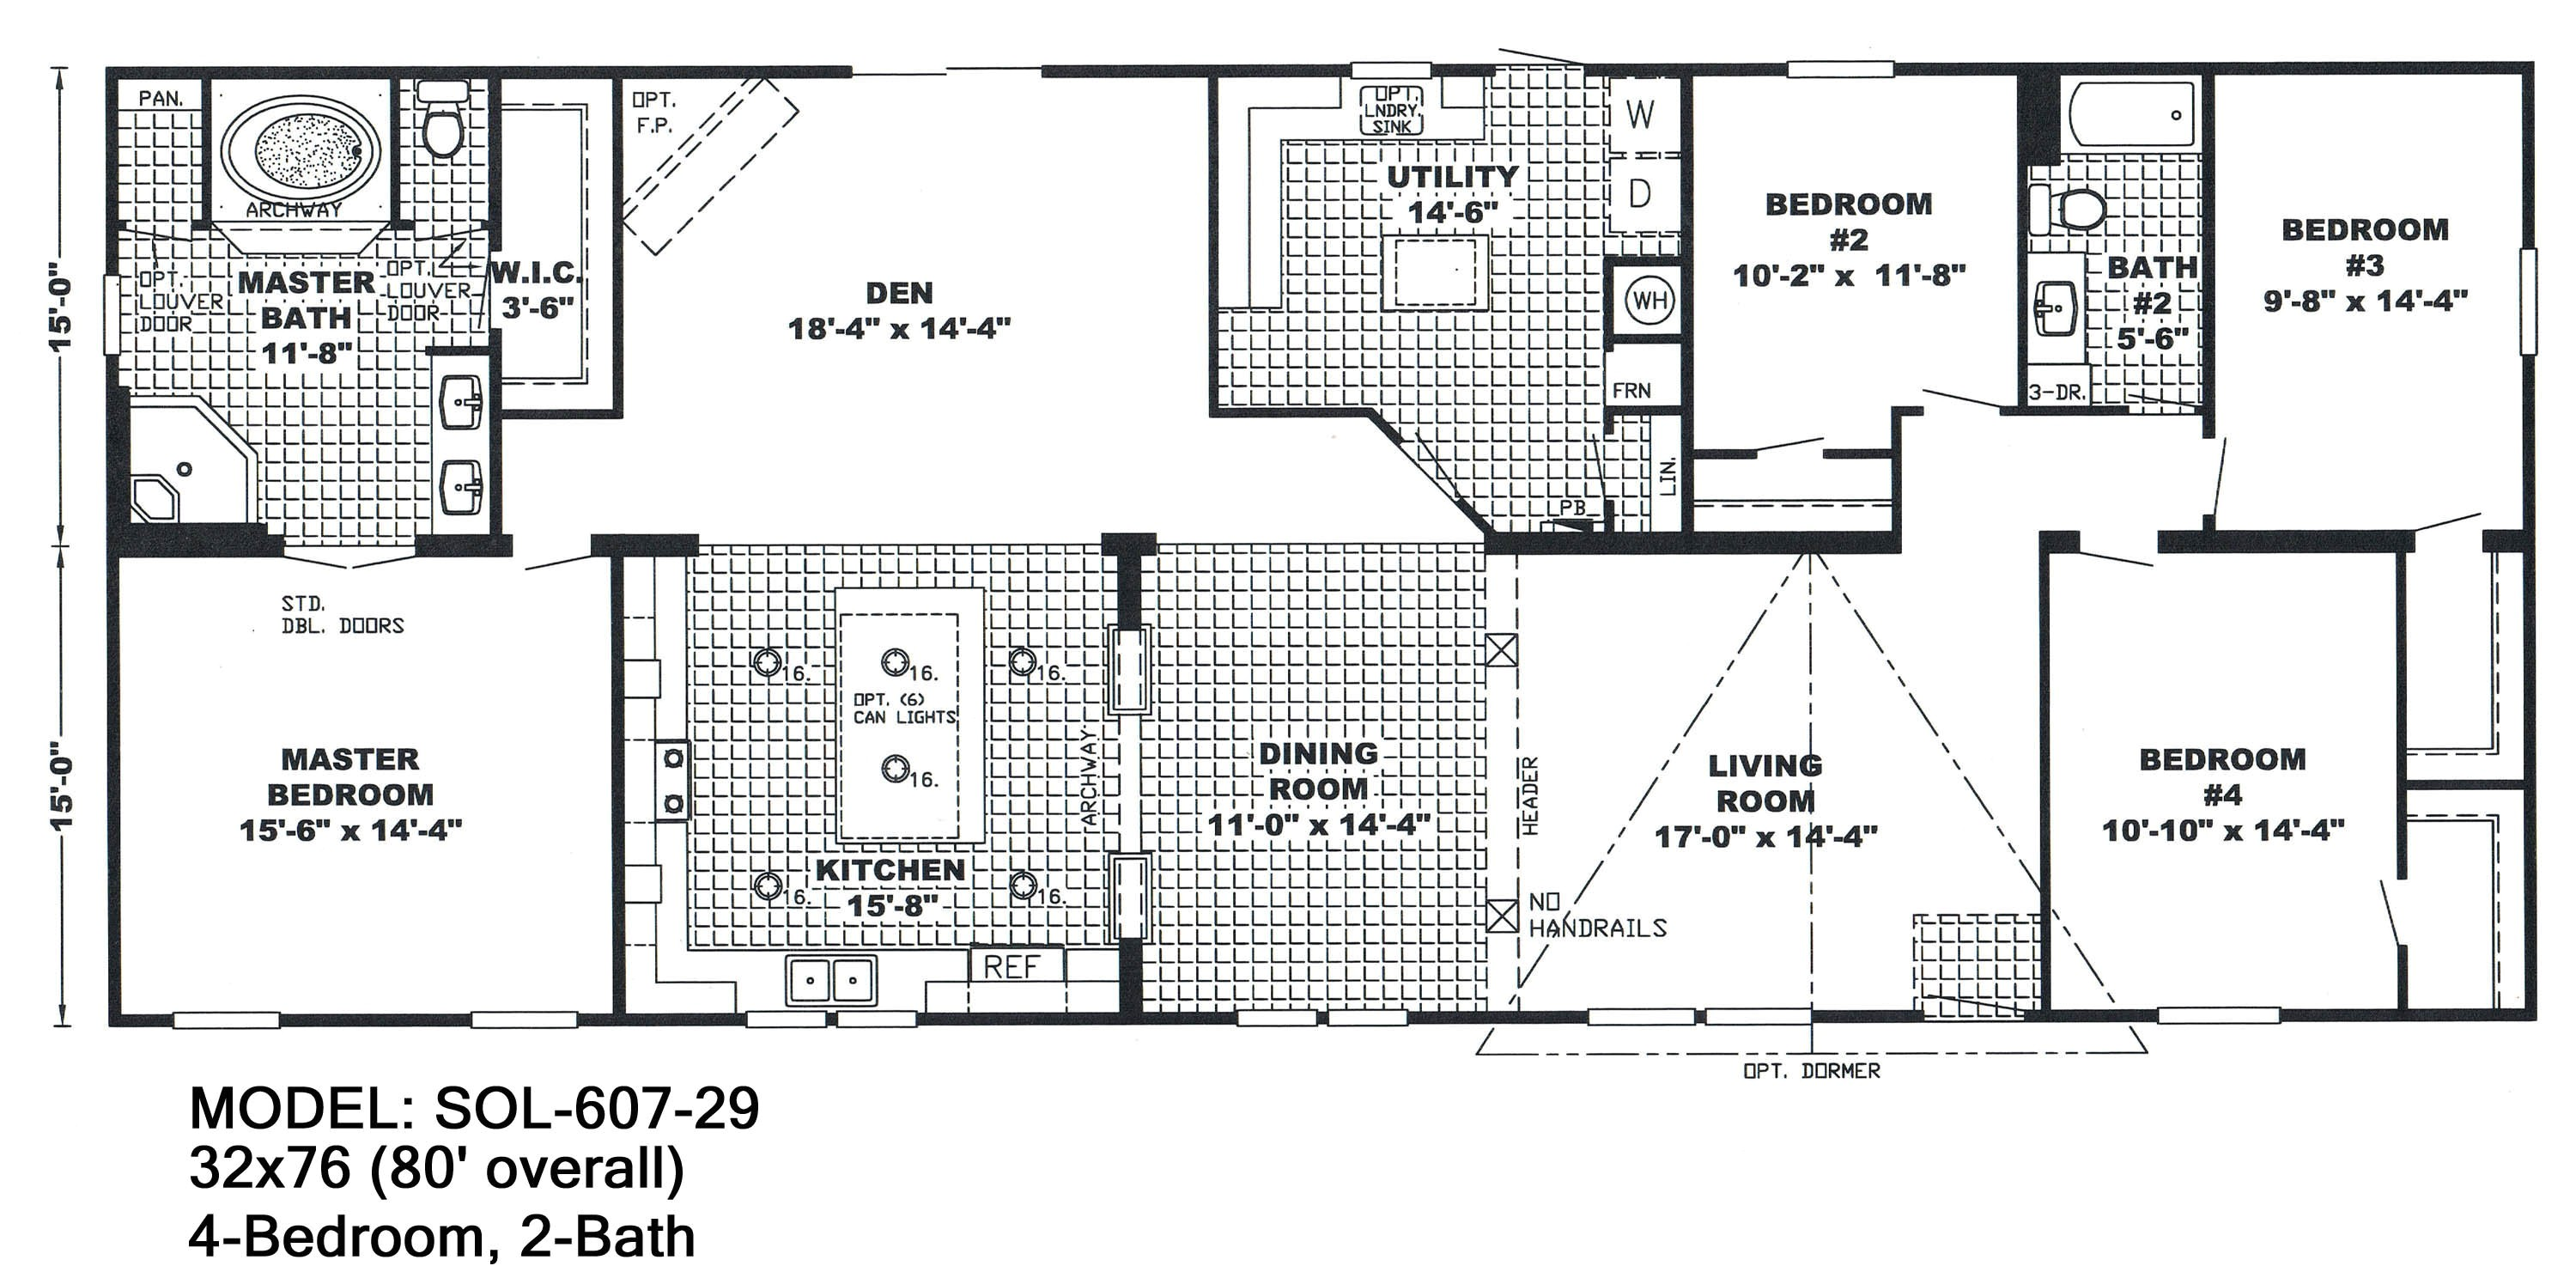 Modular Homes 4 Bedroom Floor Plans 4 Bedroom Double Wide Mobile Home Floor Plans Unique